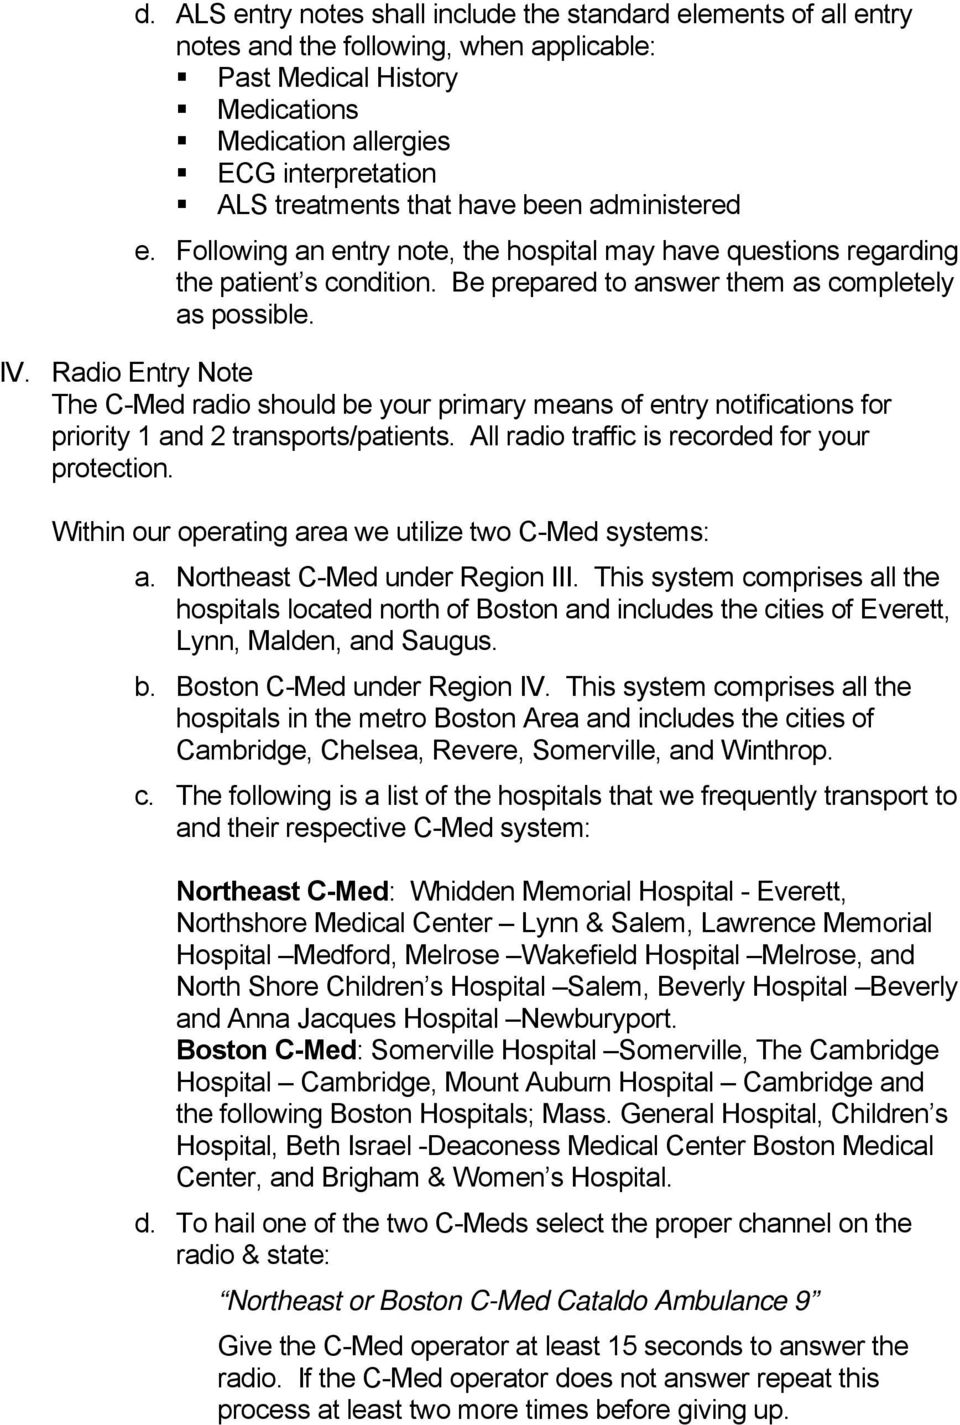 Radio Entry Note The C-Med radio should be your primary means of entry notifications for priority 1 and 2 transports/patients. All radio traffic is recorded for your protection.